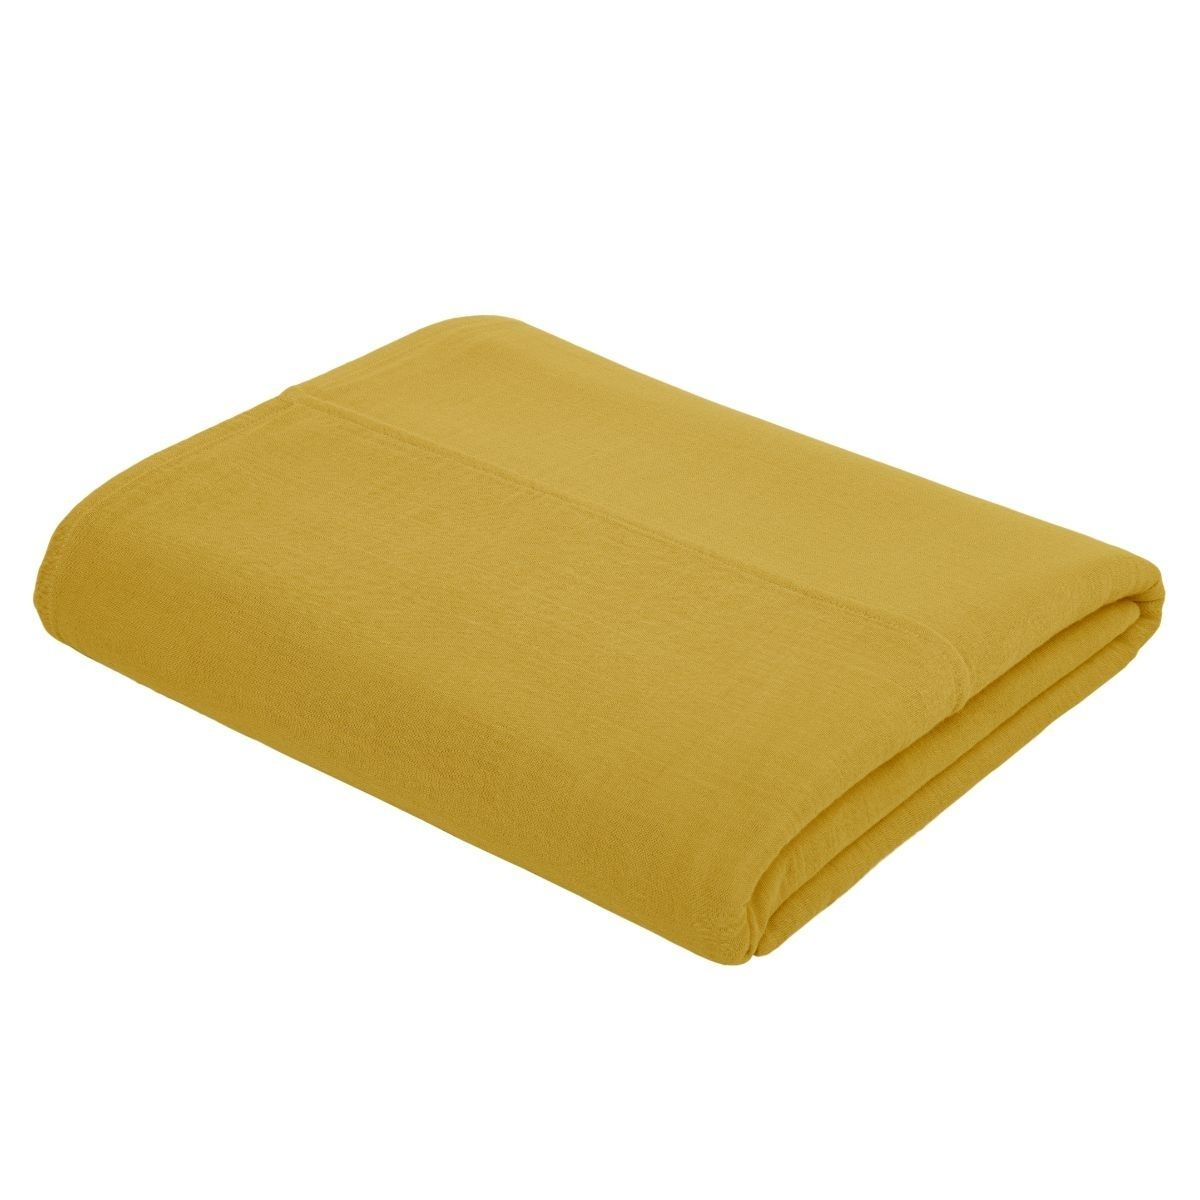 Numero 74 Top Flat Sheet Plain sunflower yellow